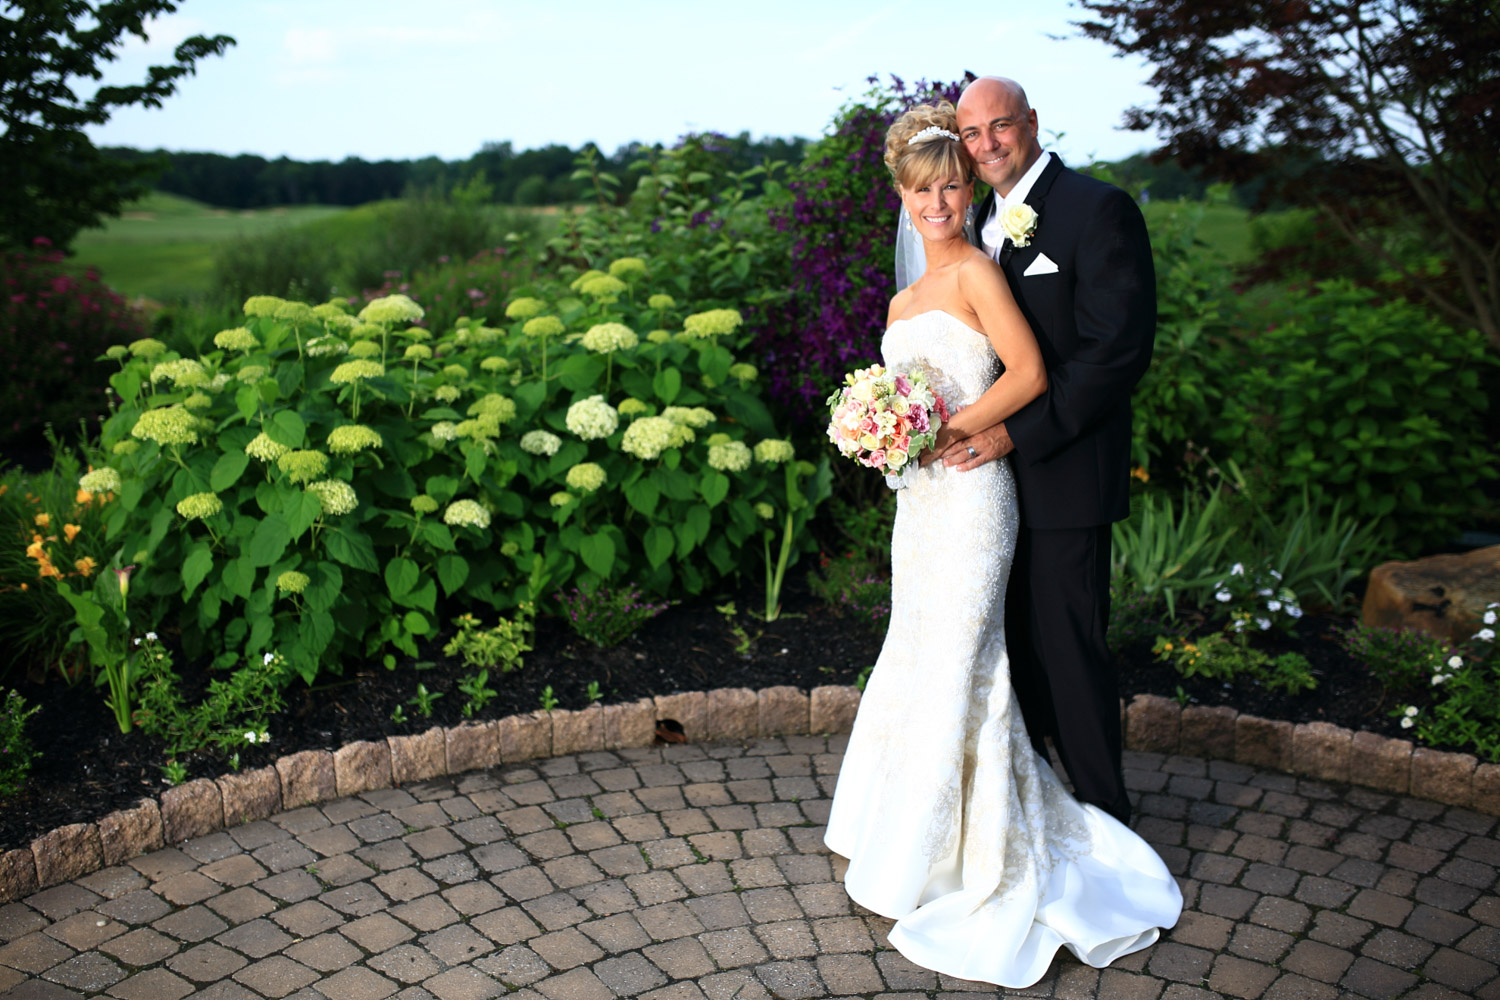 Wedding+Photos+Scotland+Run+Golf+Course+Williamstown+NJ07.jpg